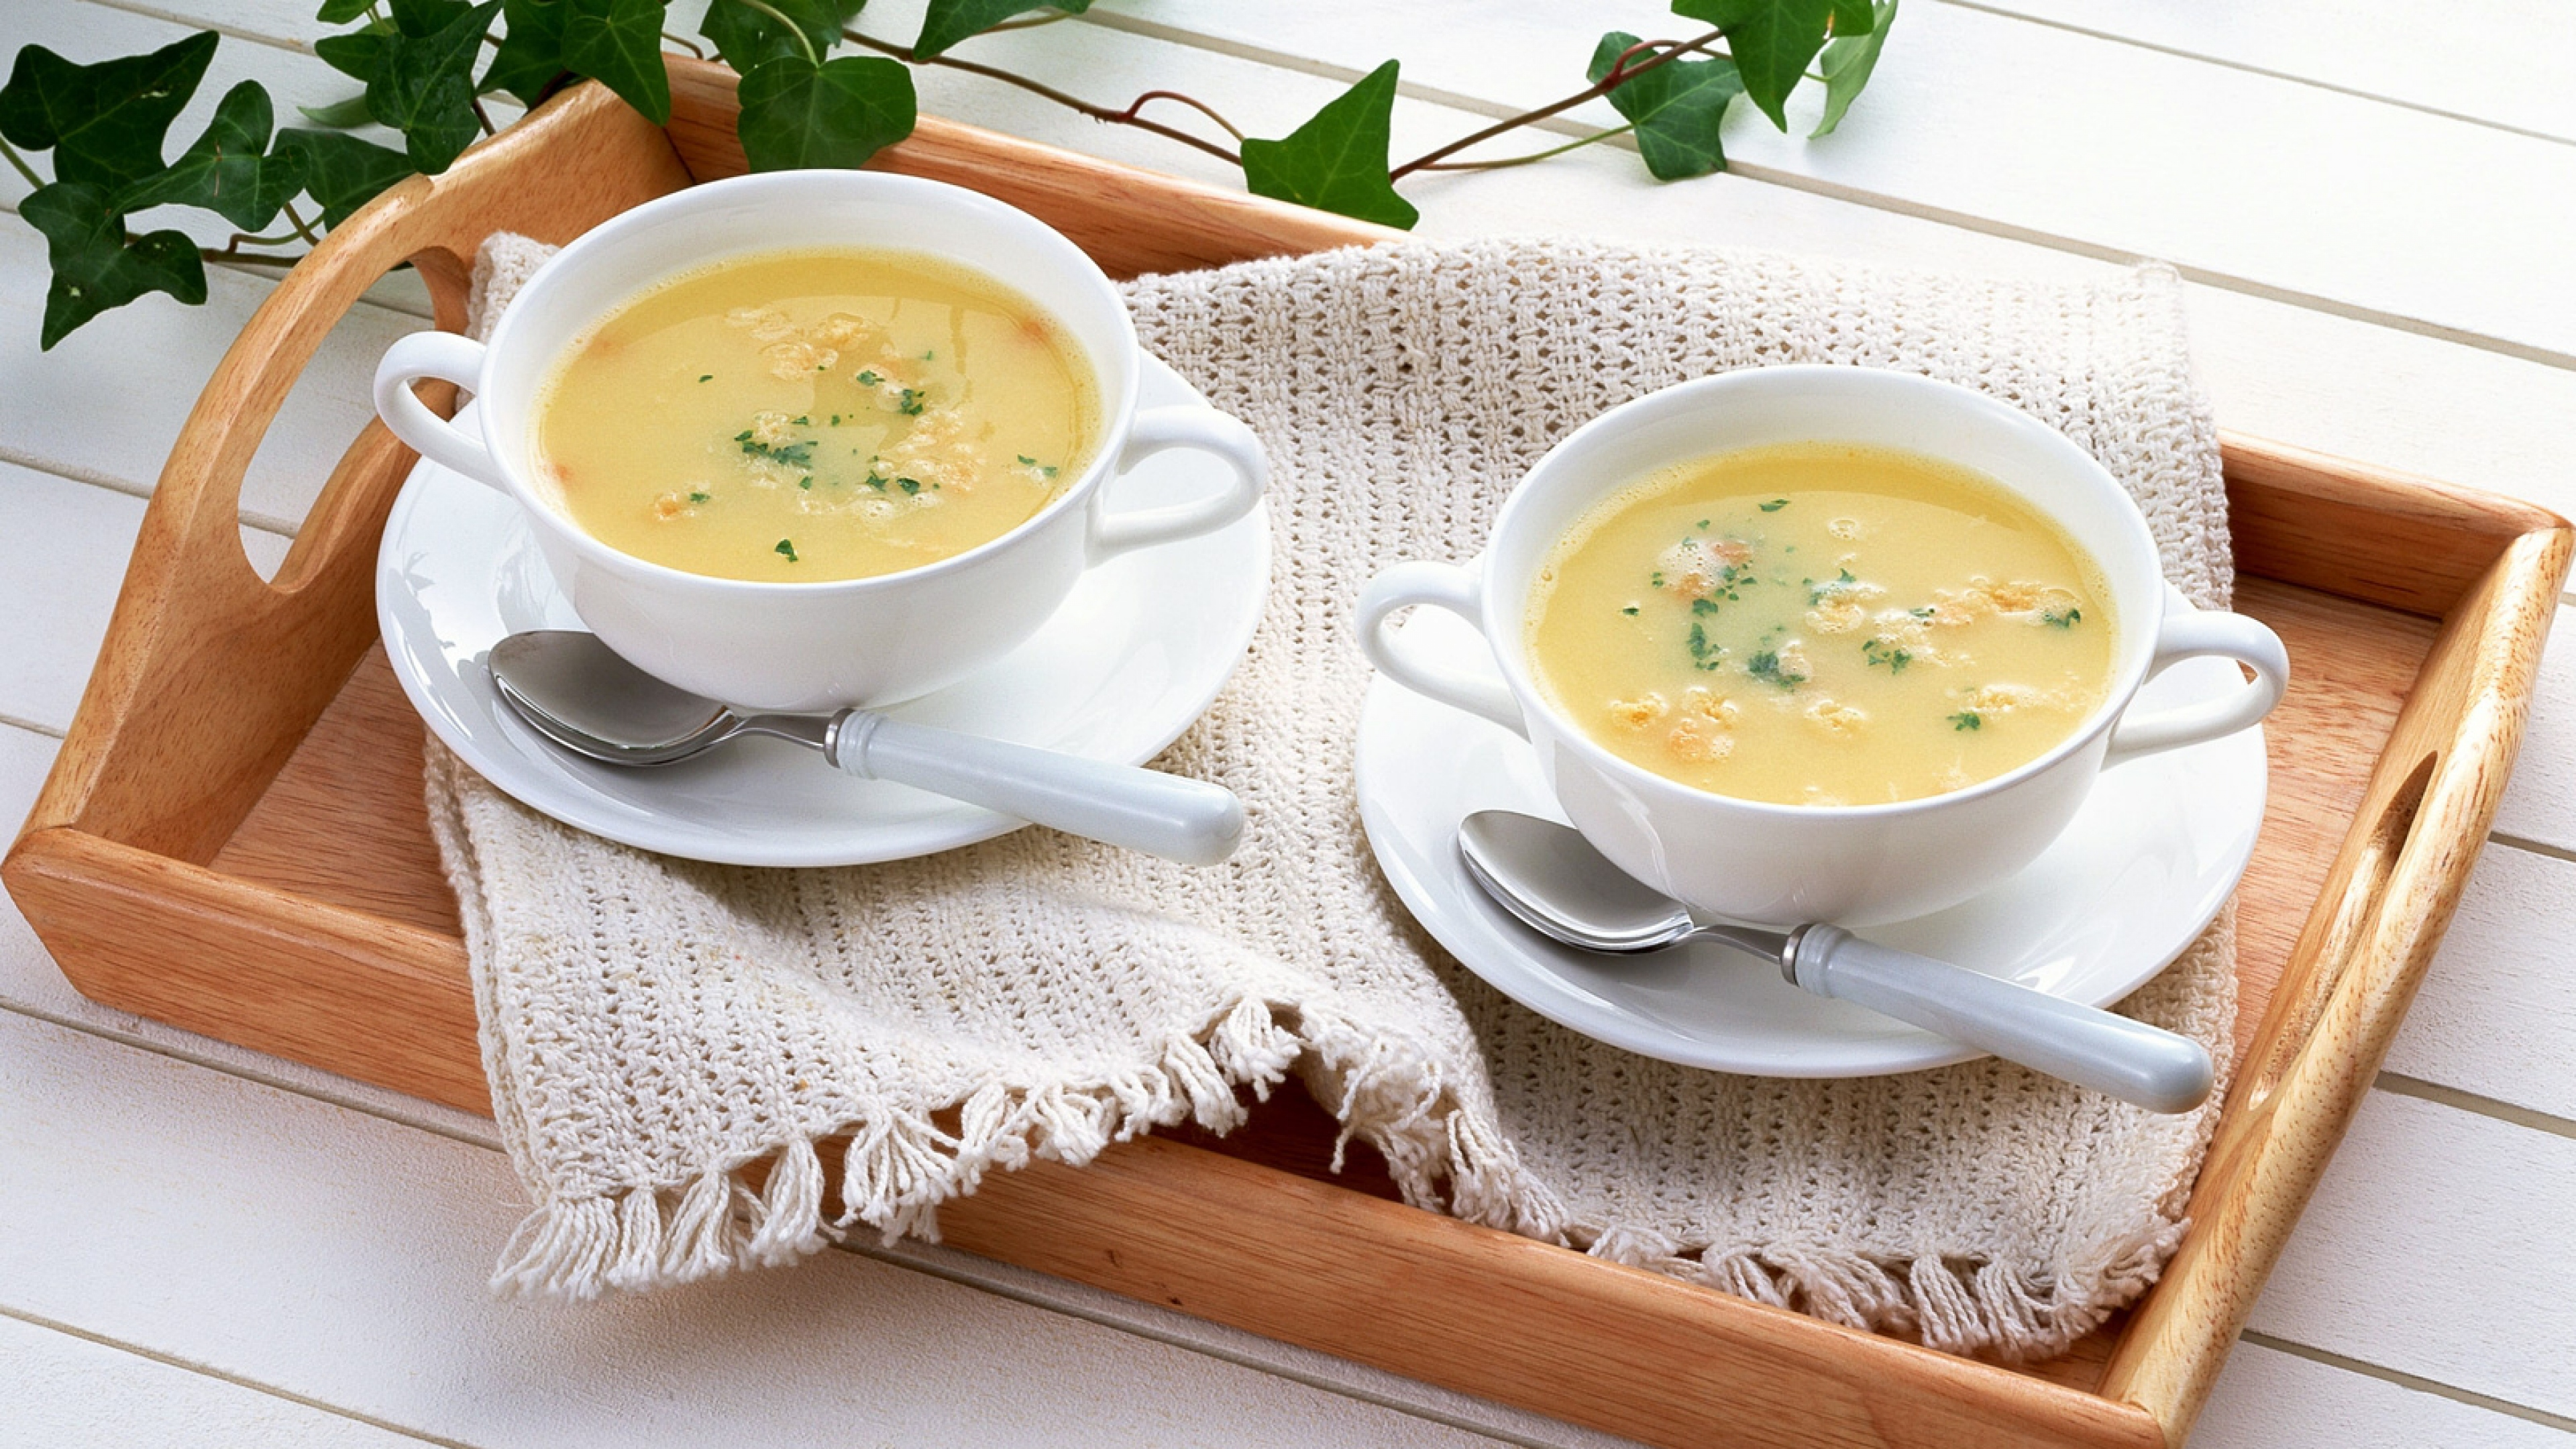 Soup Tray Widescreen Wallpaper 50628